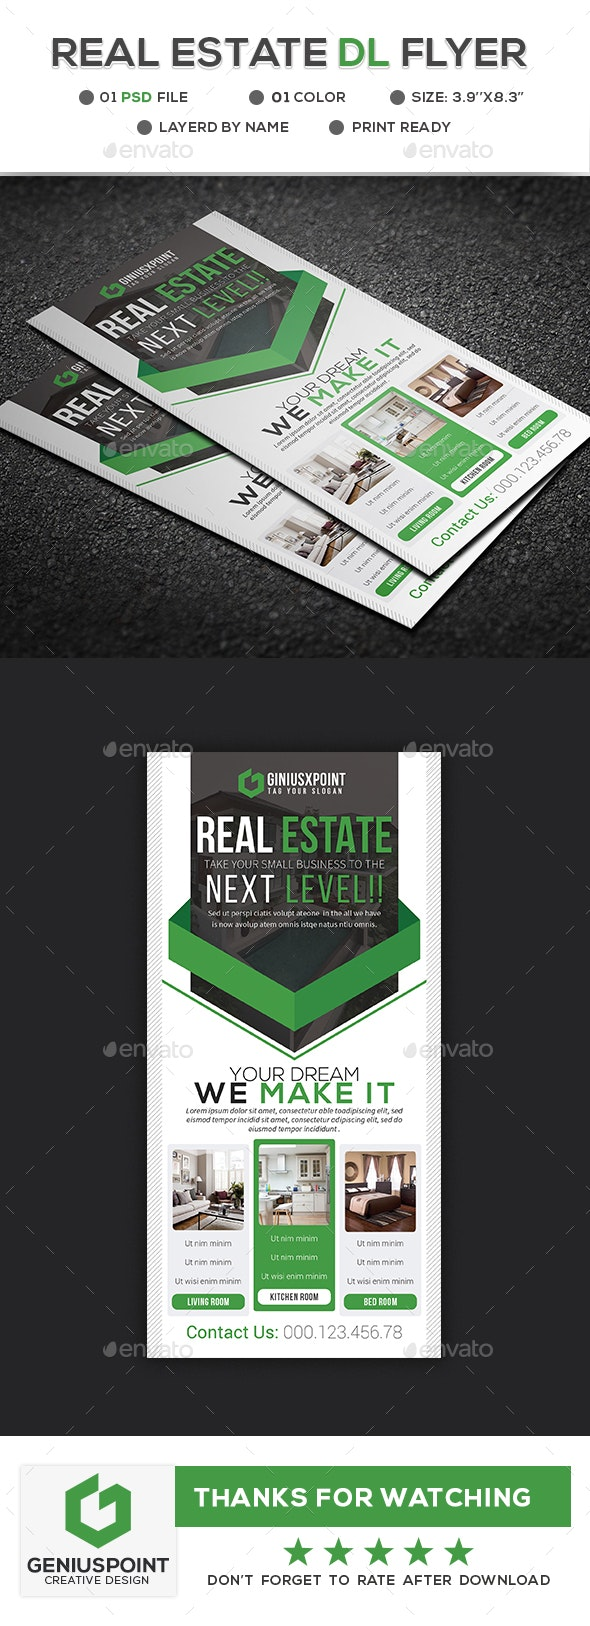 Real Estate DL Flyer - Miscellaneous Print Templates